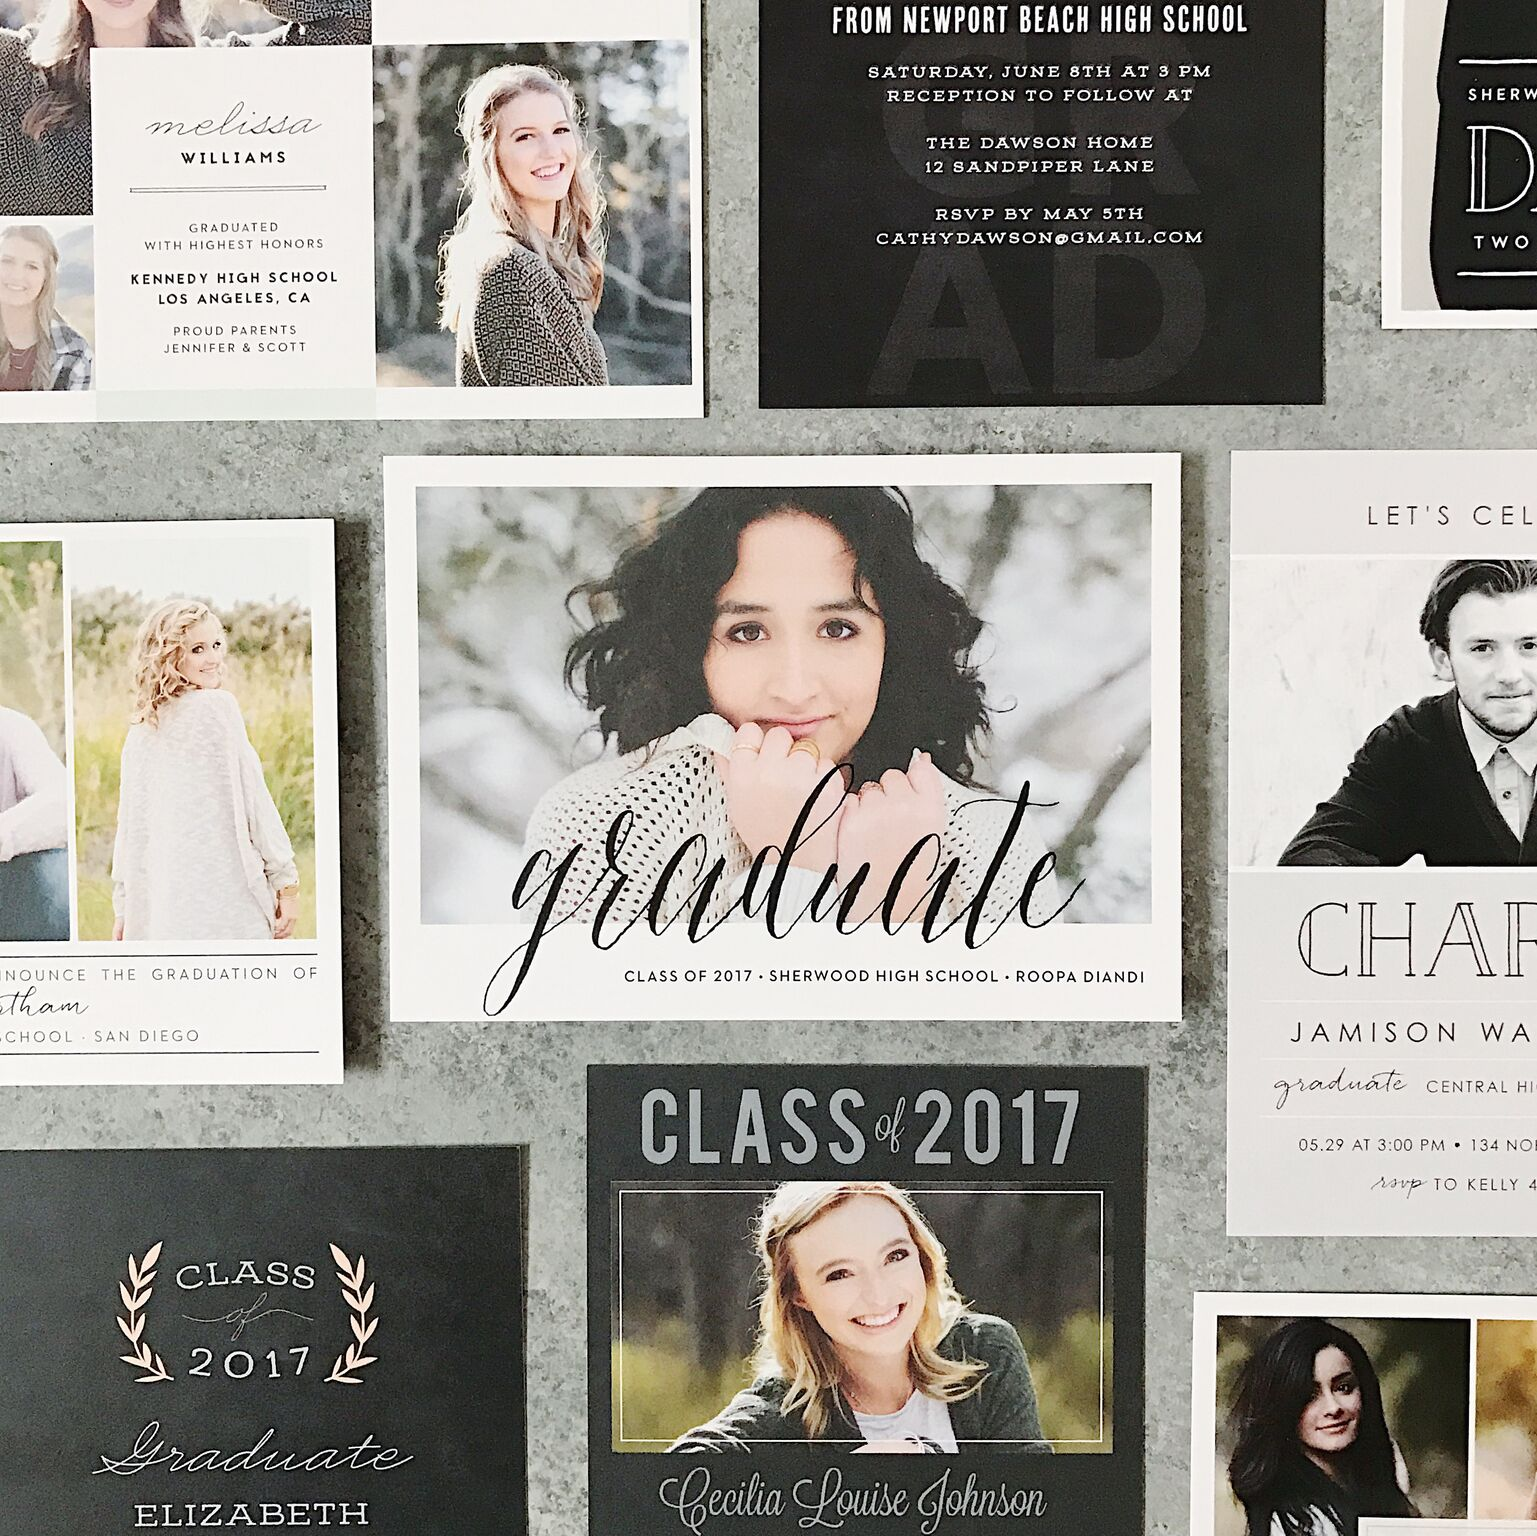 Basic_Invite_Graduation_announcements_and_invitations_5_preview